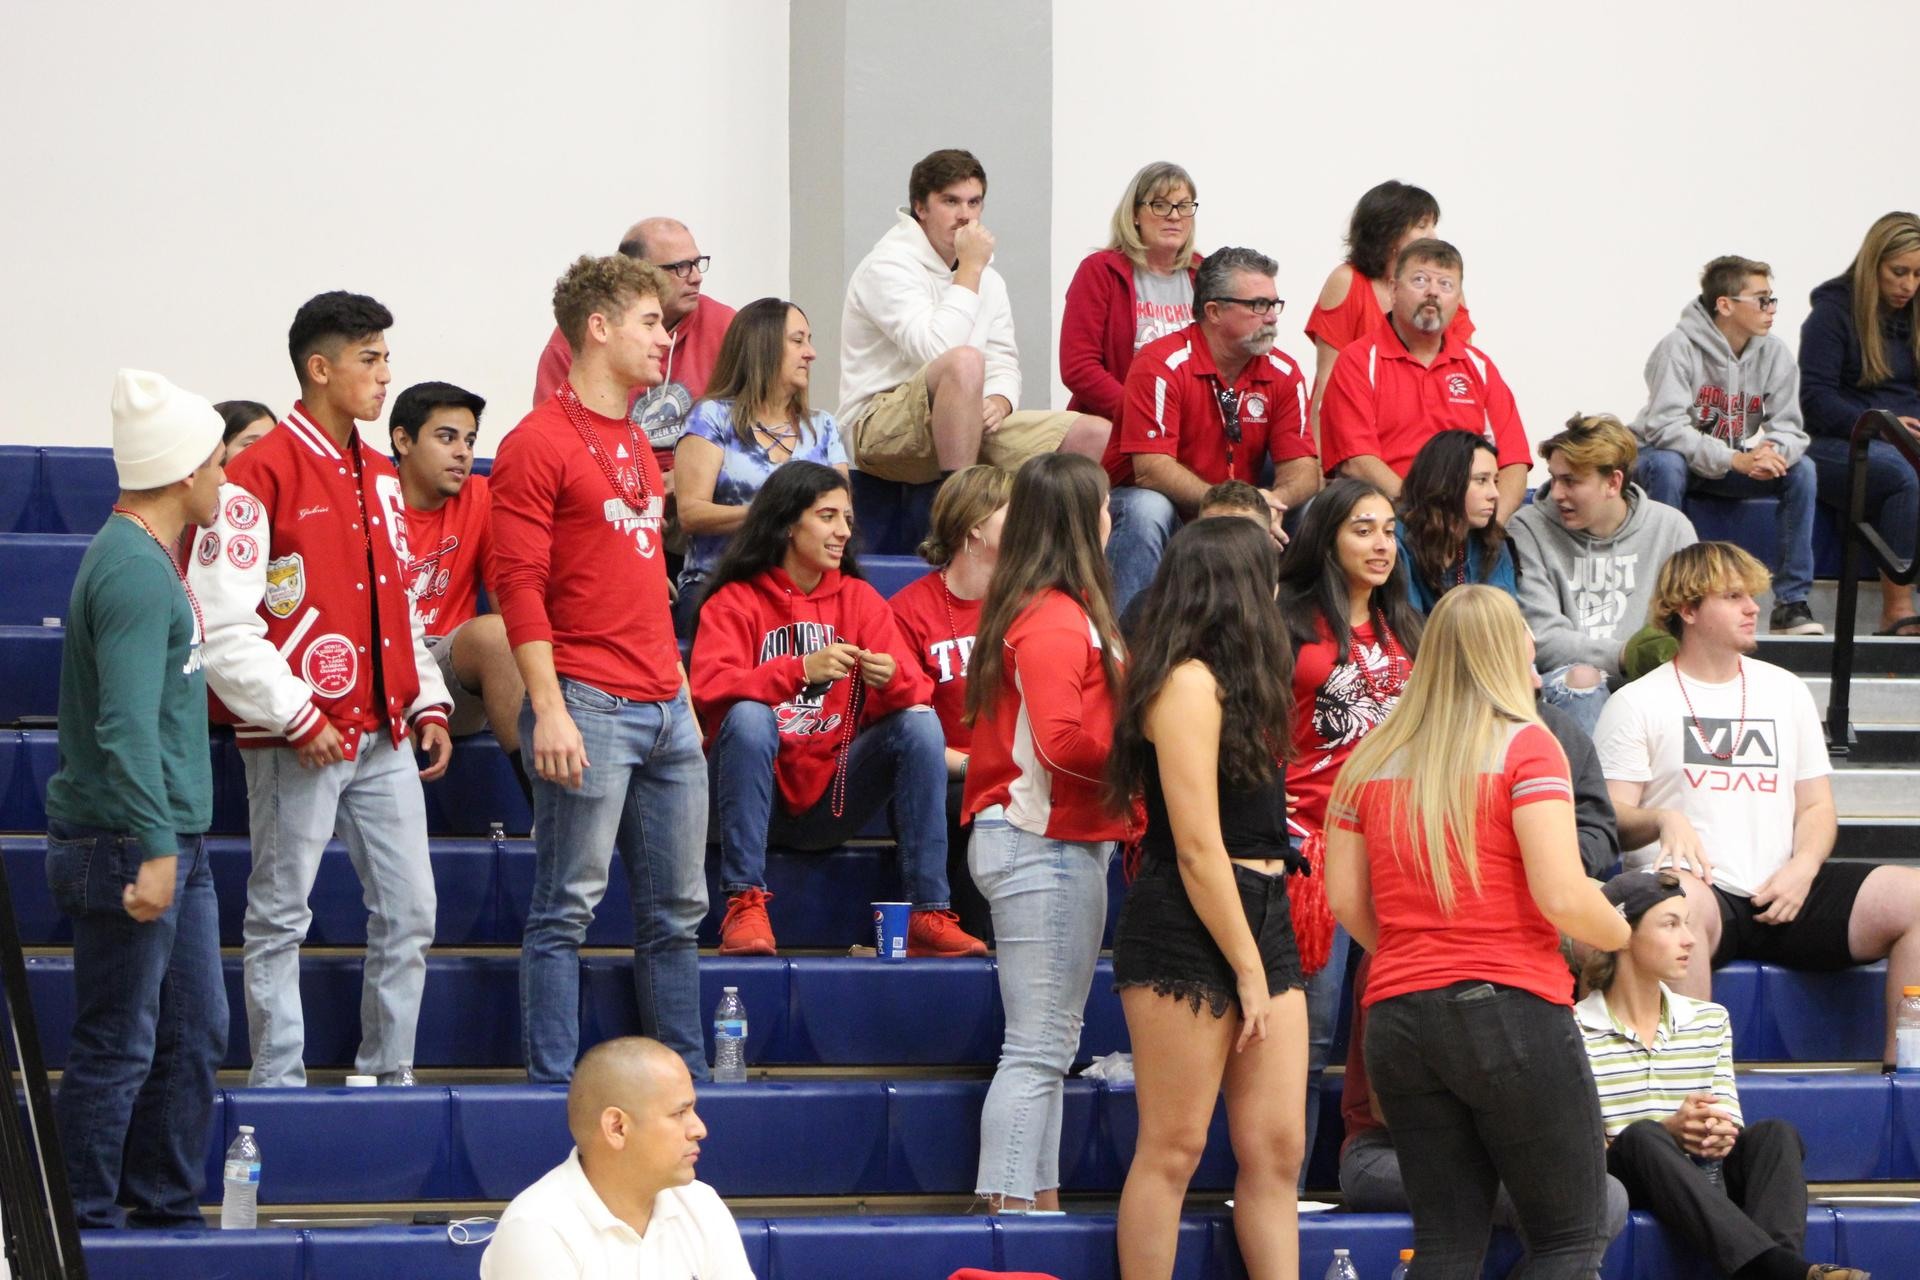 Chowchilla crowd in the College of the Sequoias gym